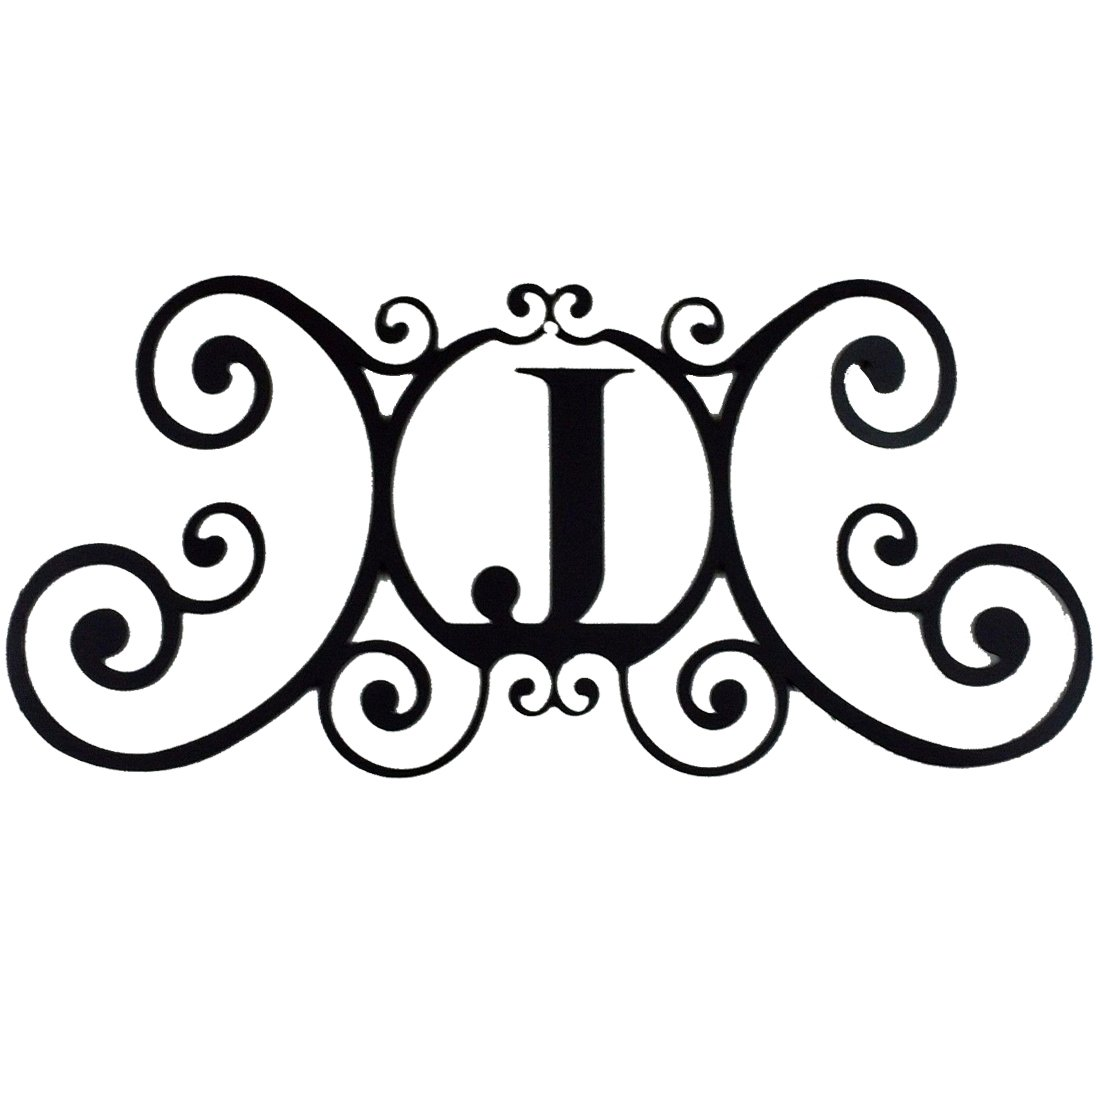 24 Inch House Plaque Letter - Wrought Iron Metal Scrolled Monogram Initial Letter Home Door Wall Hanging Art Decor Family Name Last Name Letter Sign (J, 24 x 11 inches,Thick 0.078 inch (2mm))